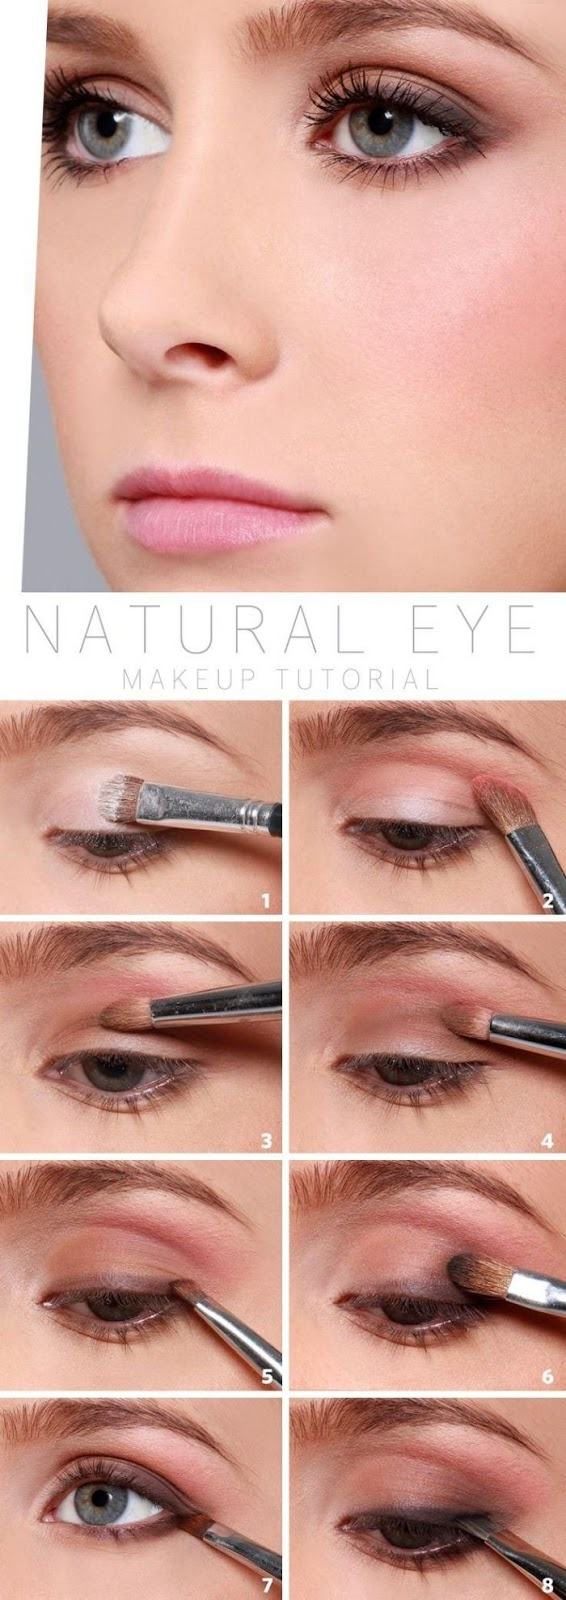 Eye Makeup ideas Want To Know